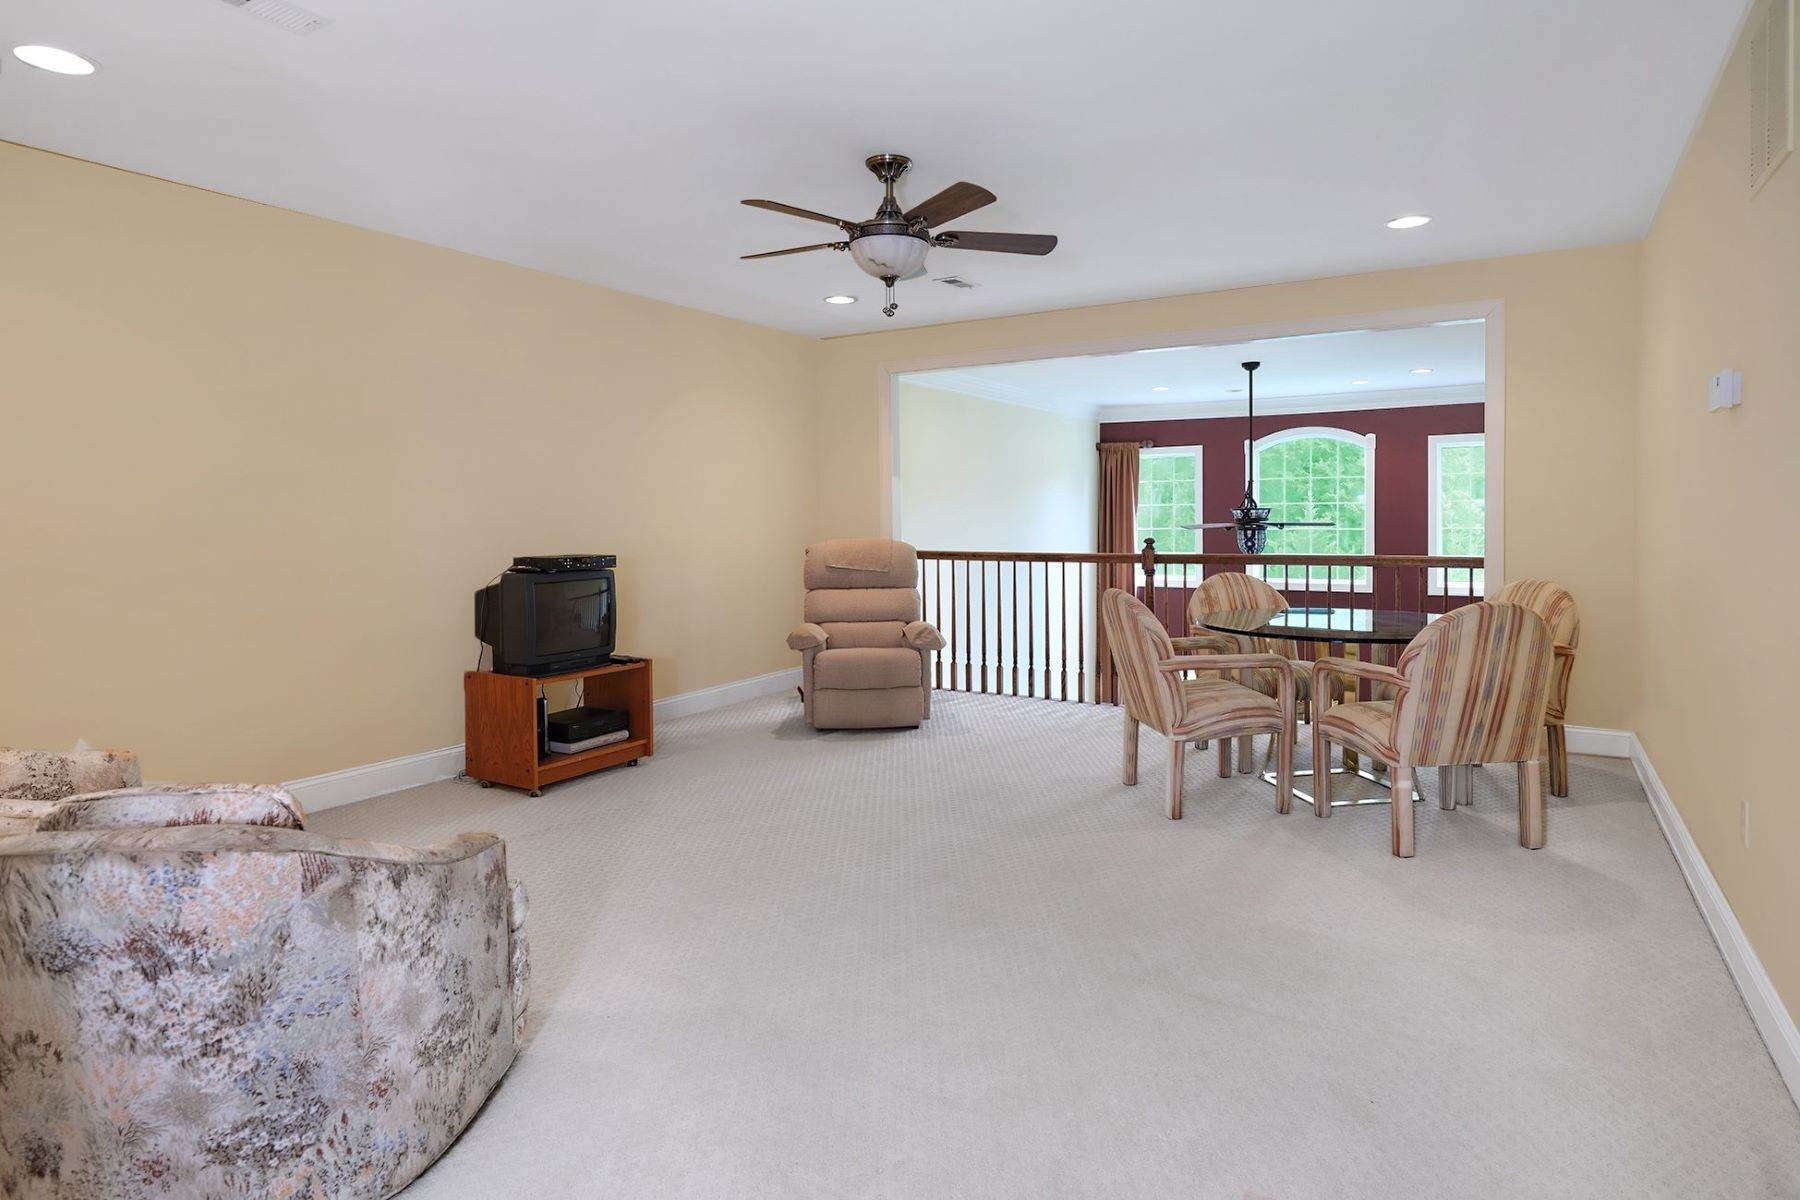 17. Condominiums for Sale at In Ventana At Lawrenceville 8 Schindler Court, Lawrenceville, New Jersey 08648 United States